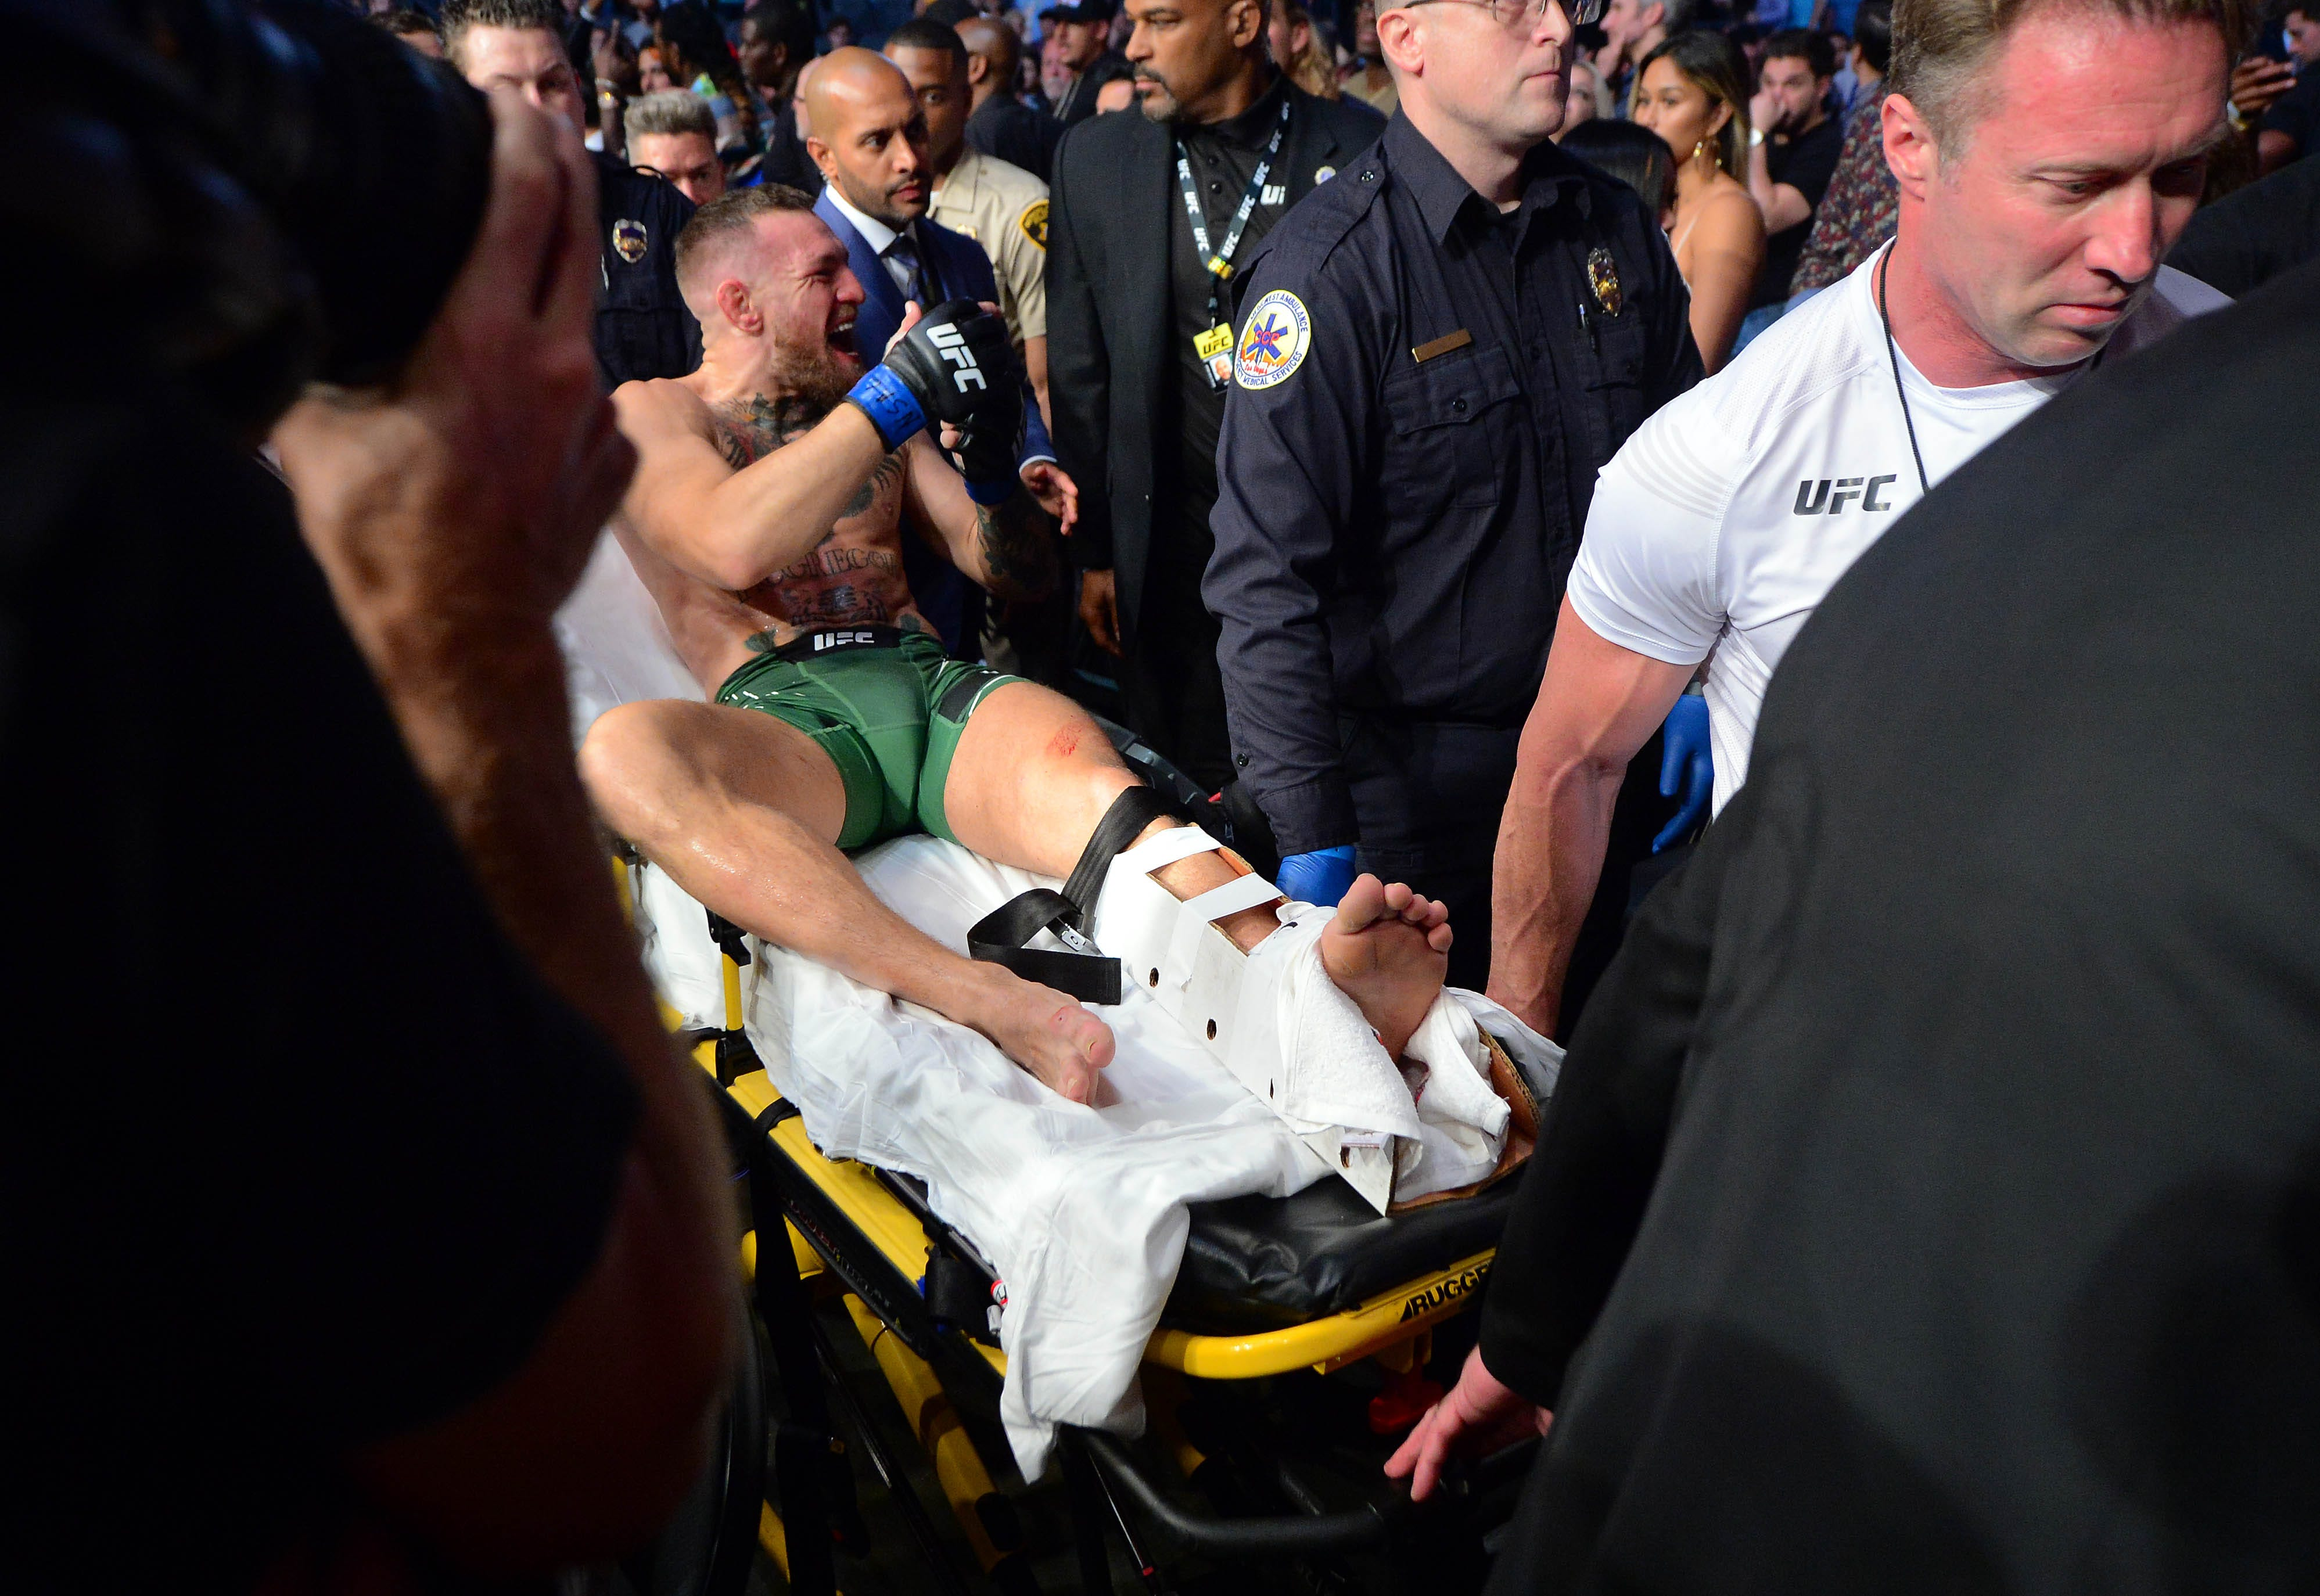 Poirier gets TKO win via doctor s stoppage as McGregor suffers gruesome injury